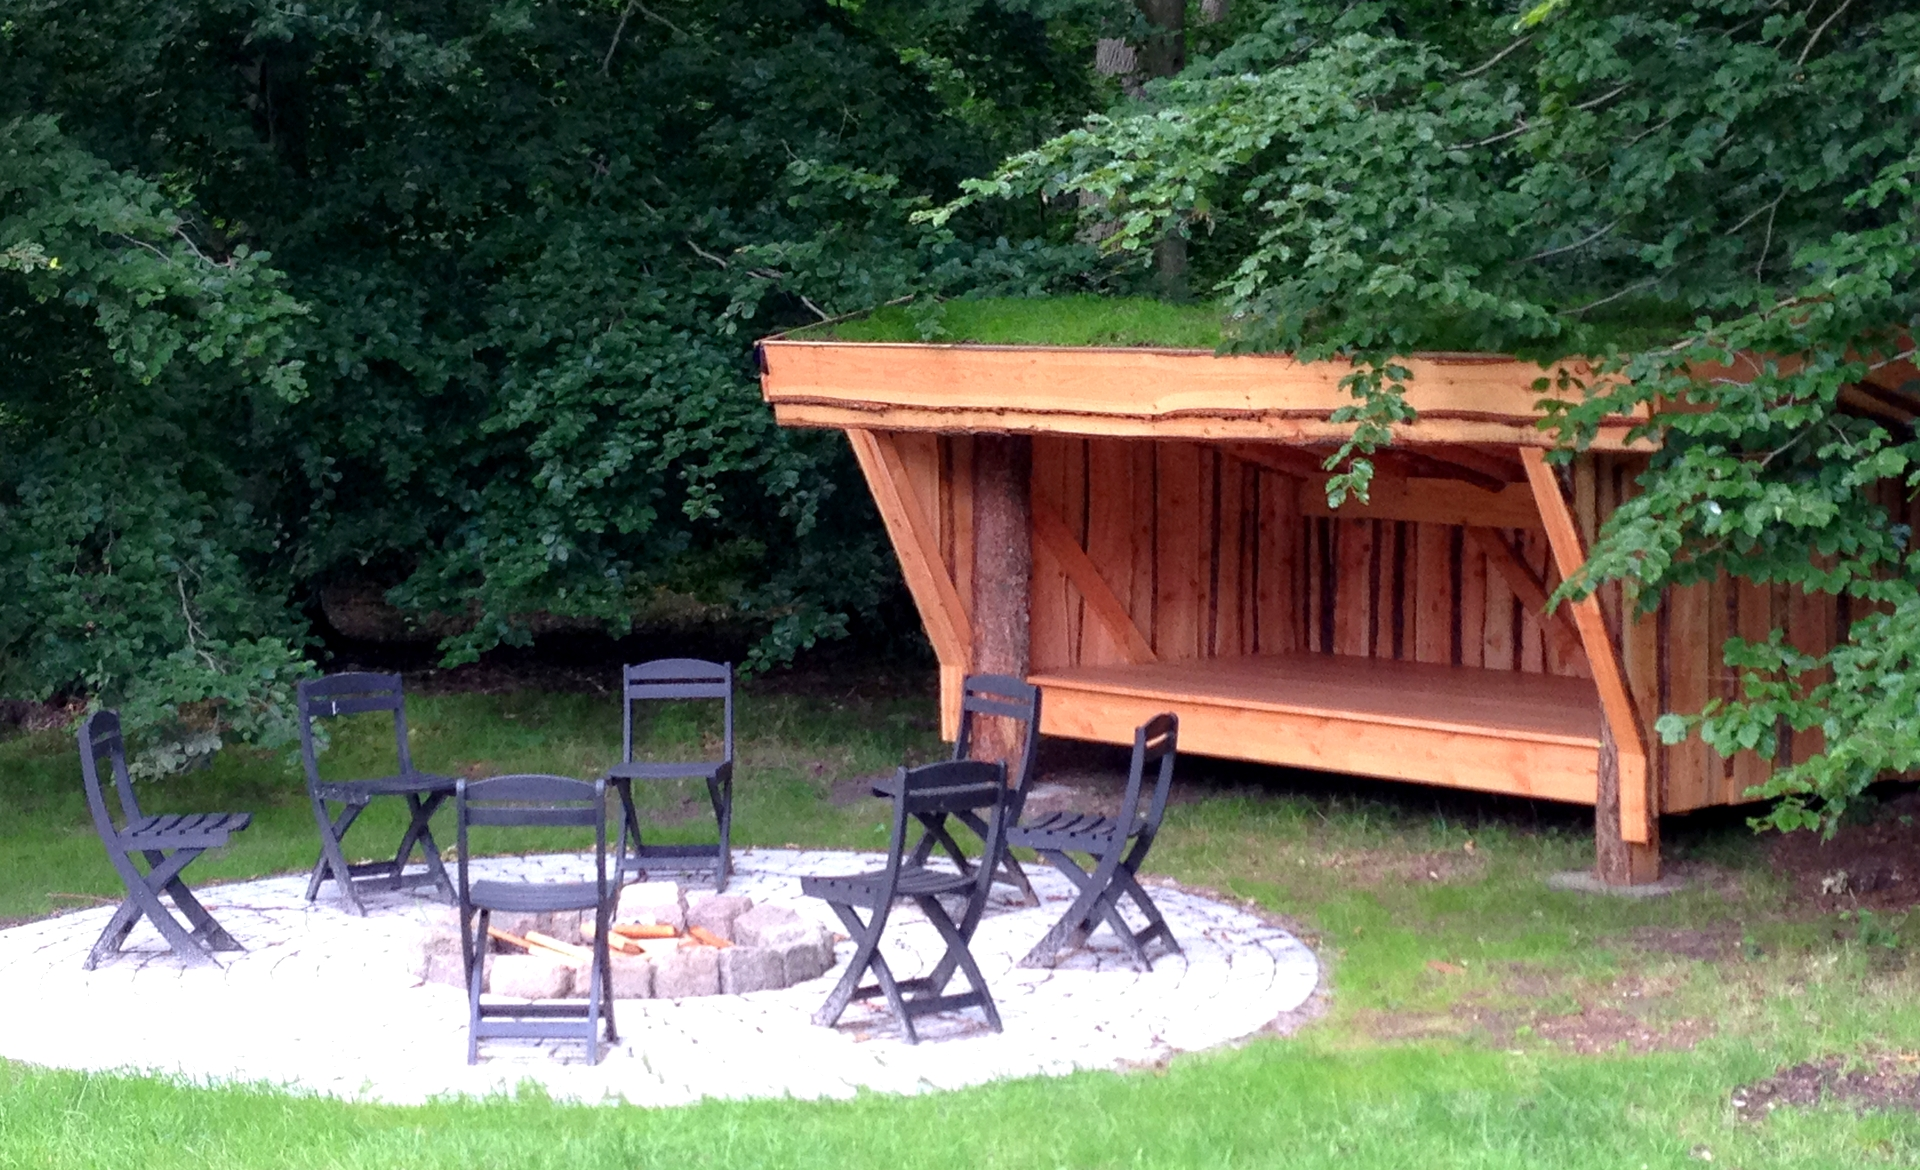 Outdoor firepit and sleeping platform